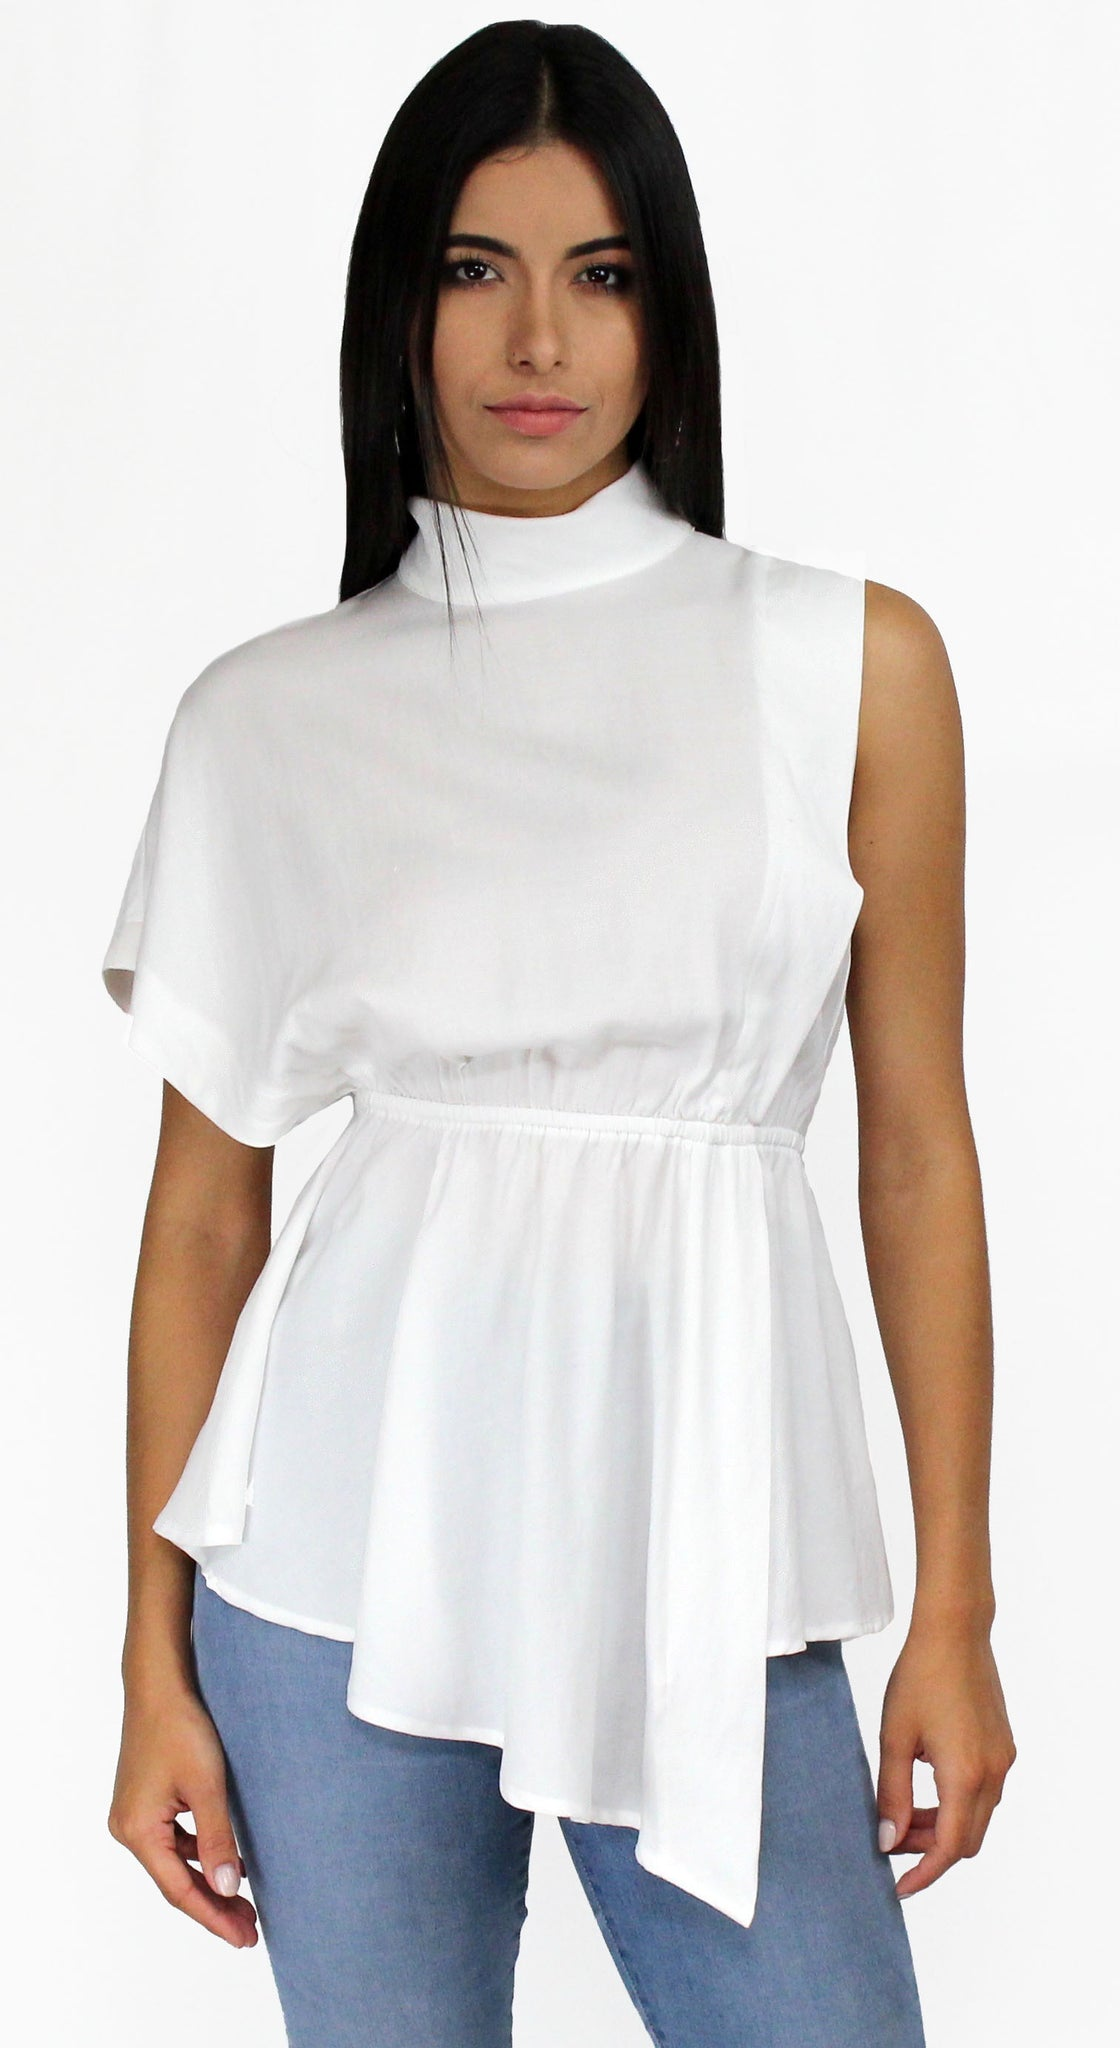 Sleek Style White Funnel Neck Blouse